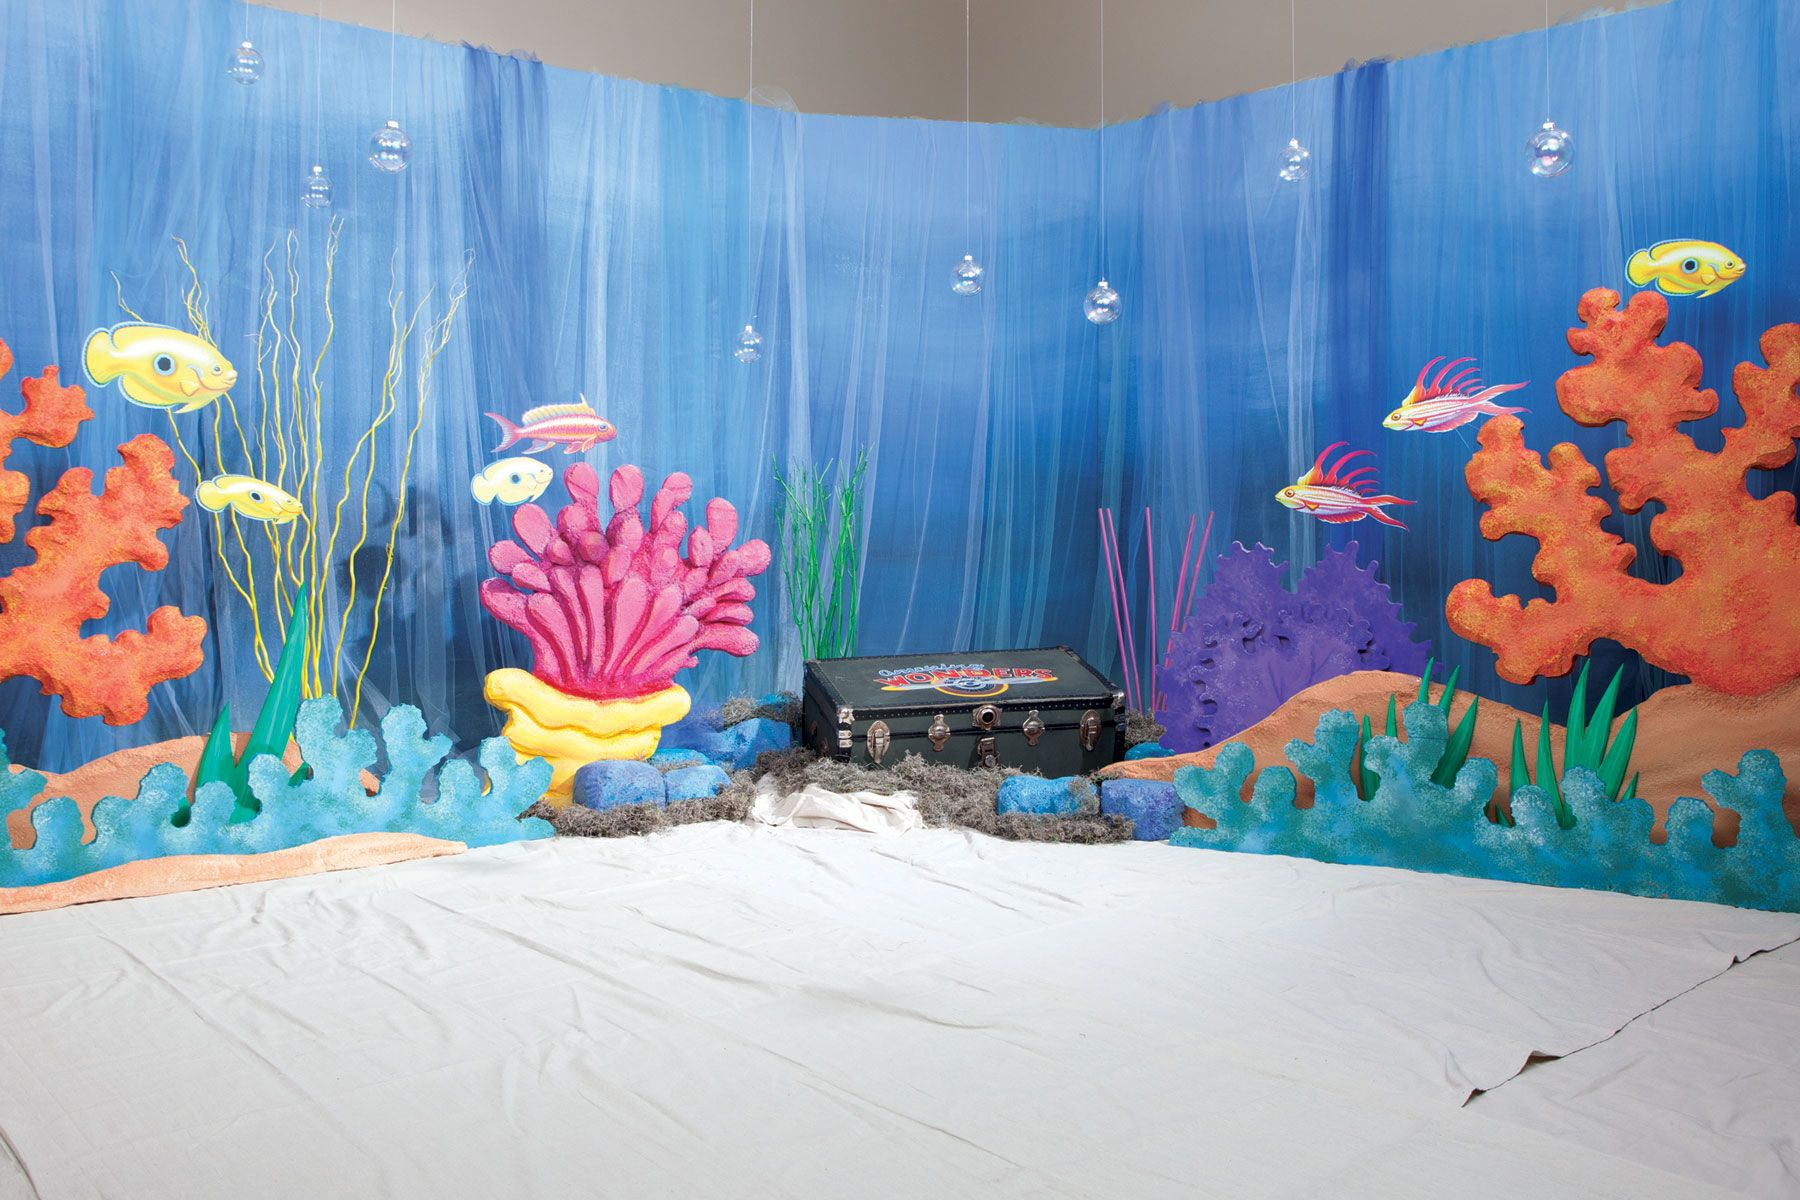 Best Making Under The Sea Decorations Tip 1 Use Lots Of This Month